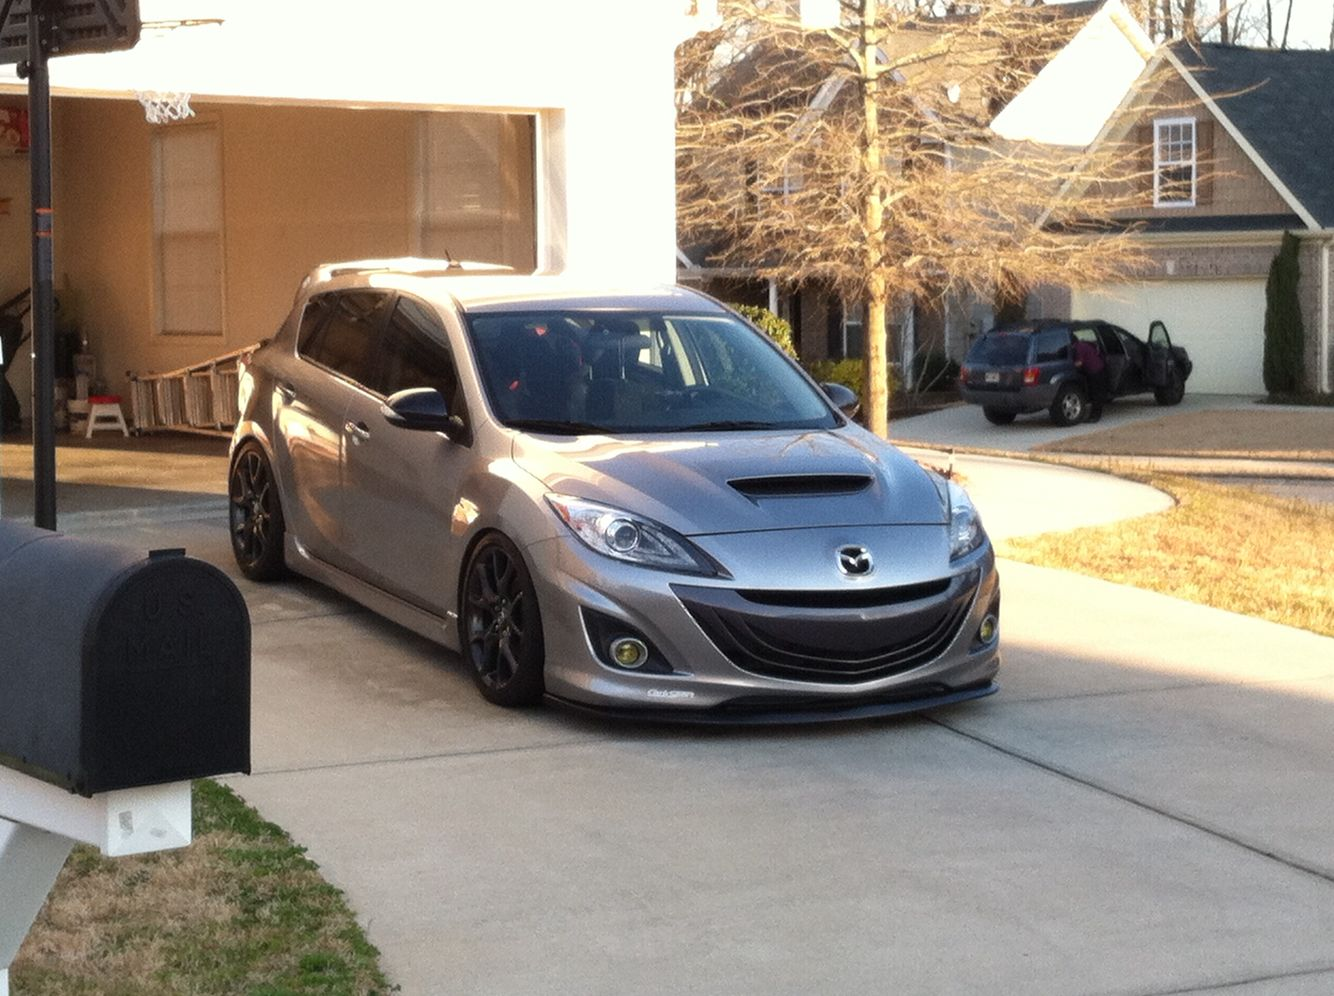 Ms3 H Amp R Coilovers 15mm Spacers Sti Limited 06 07 Front Lip Mazdaspeed 3 Pinterest Lips